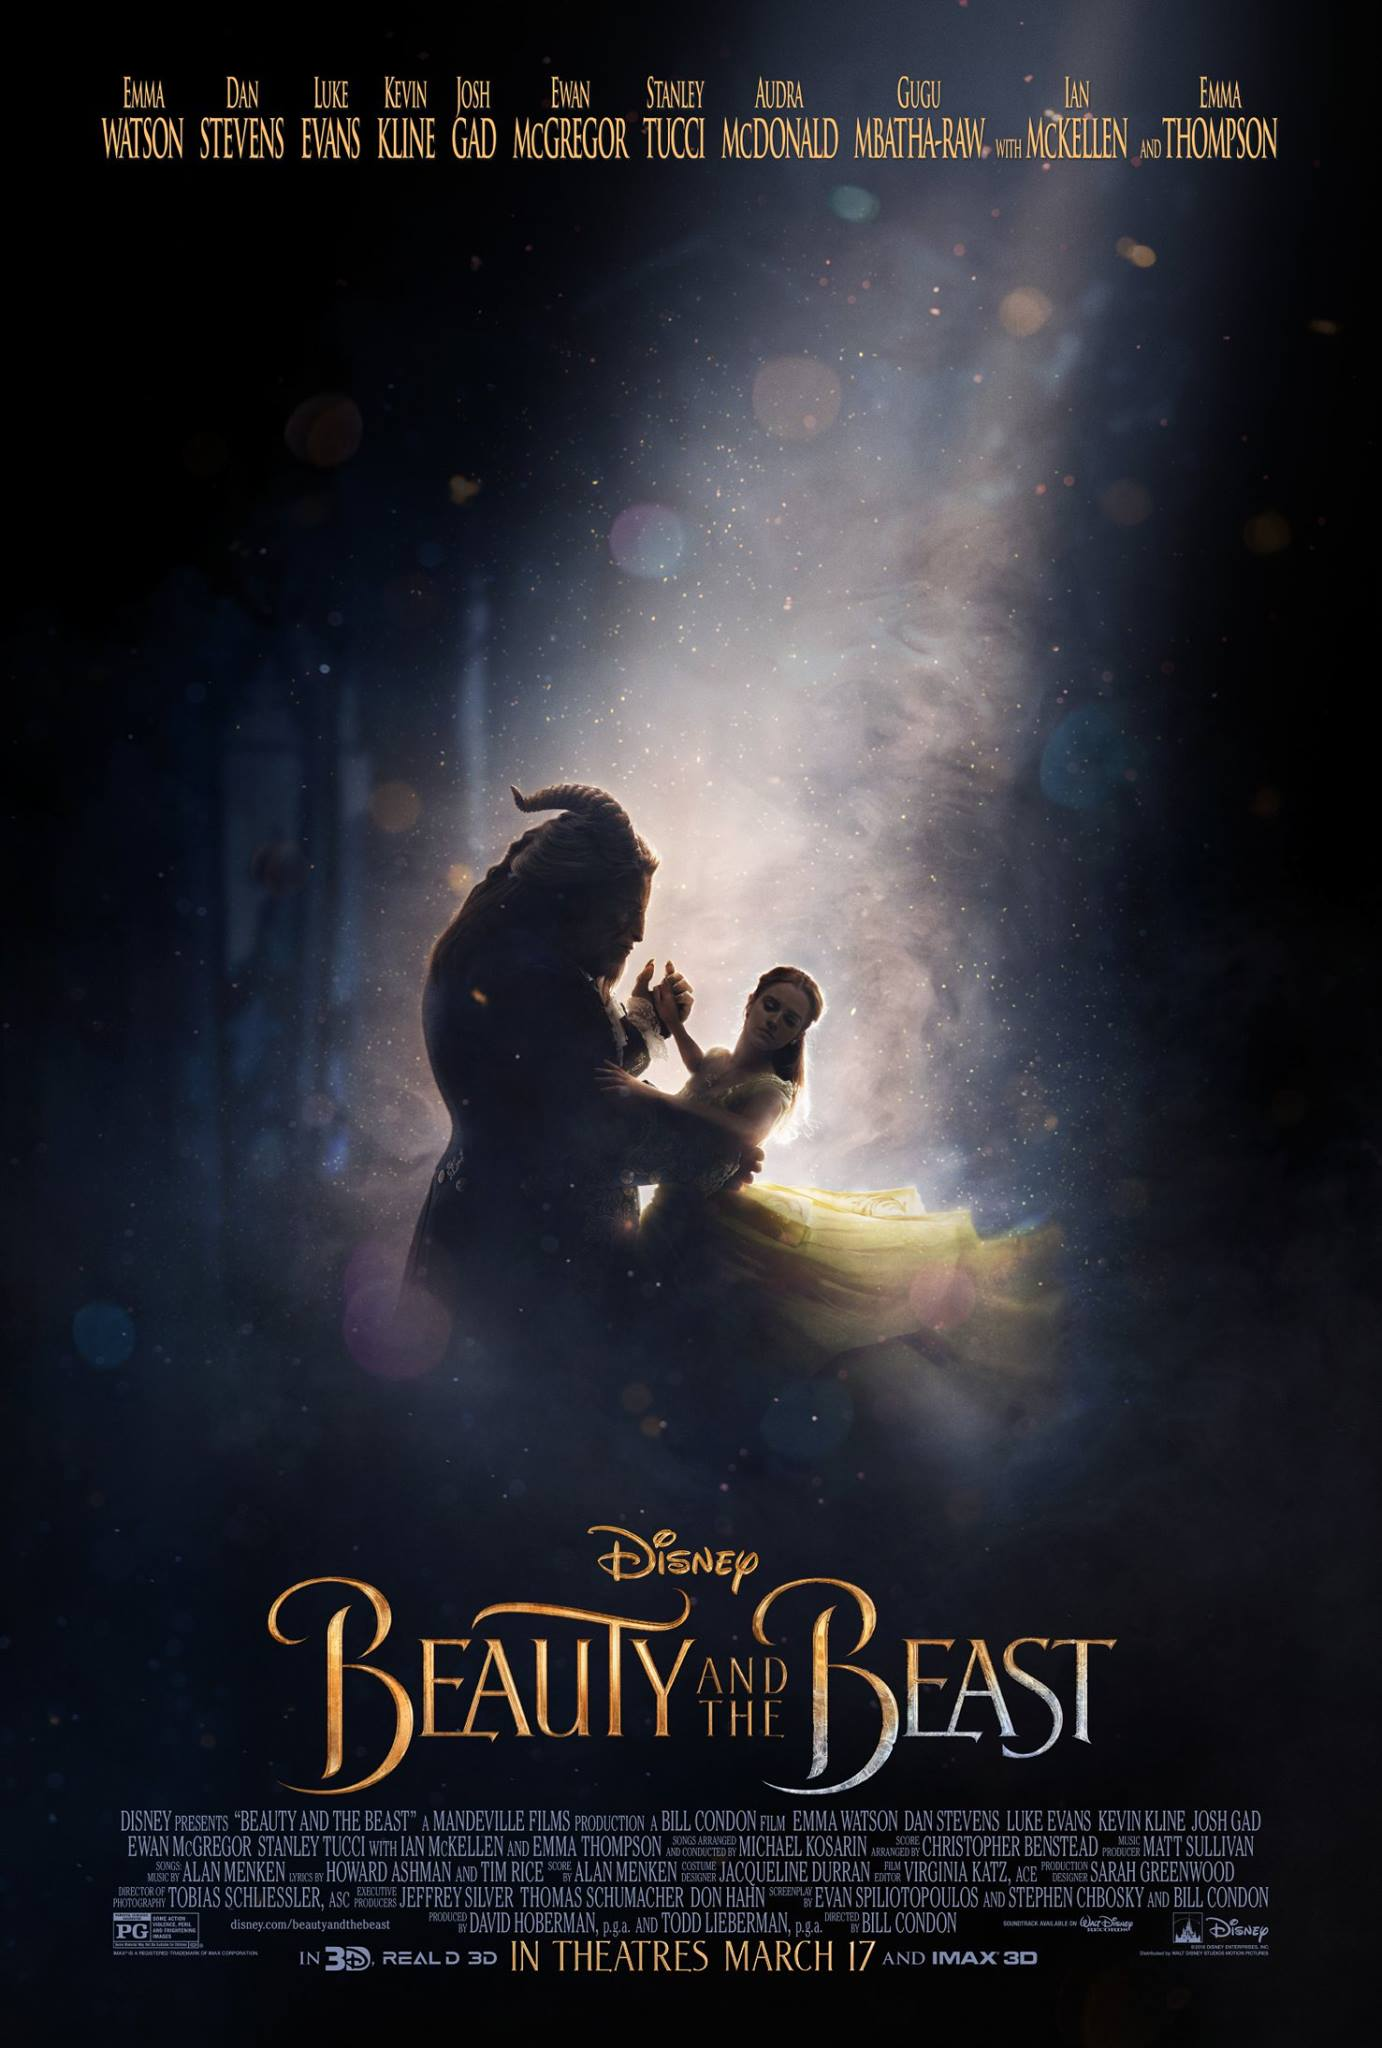 A New Beauty And The Beast Poster Has Been Revealed